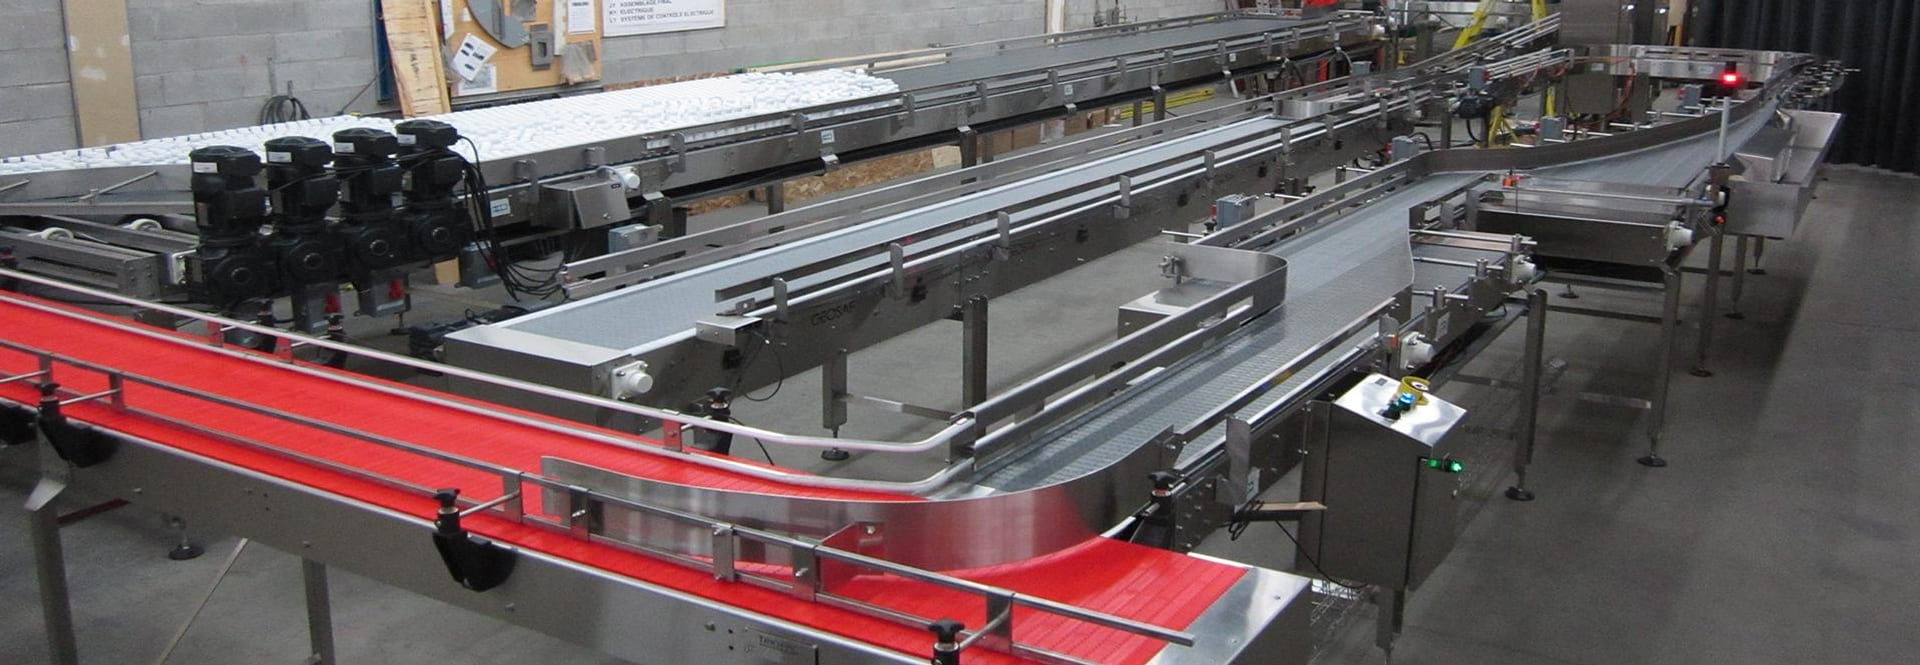 The Experts in Conveyor Solutions!